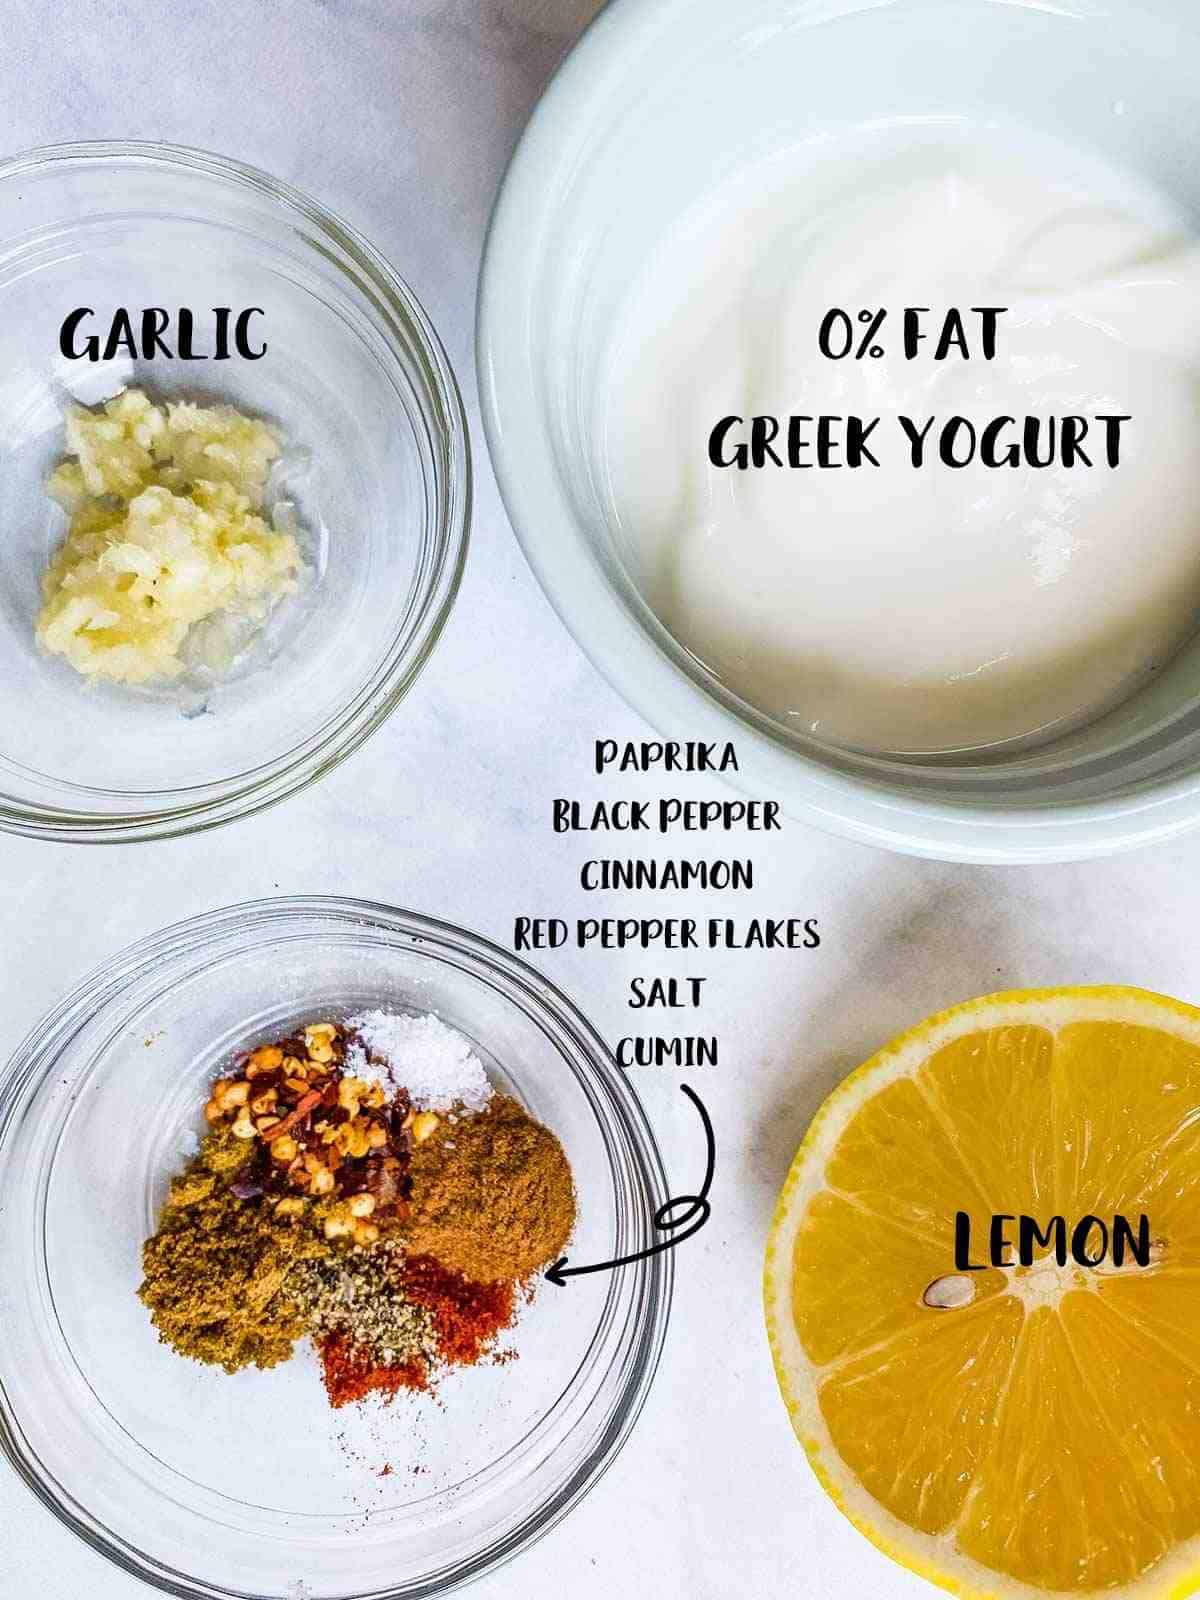 Small bowls of garlic, yogurt, and middle eastern spices and a lemon on a white table